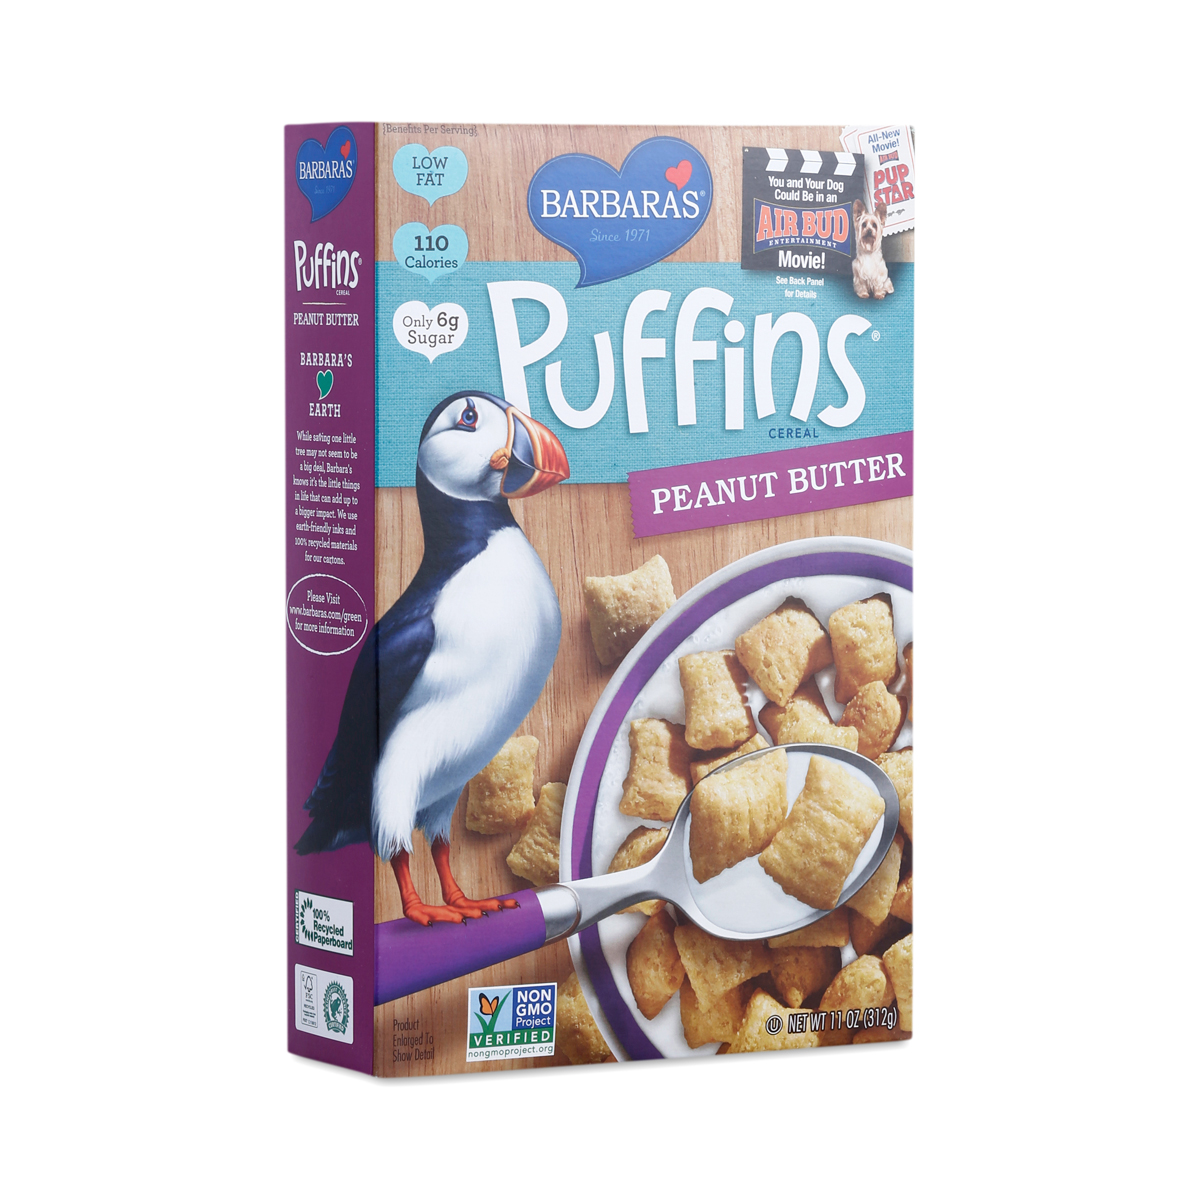 Peanut Butter Puffins Cereal By Barbara's